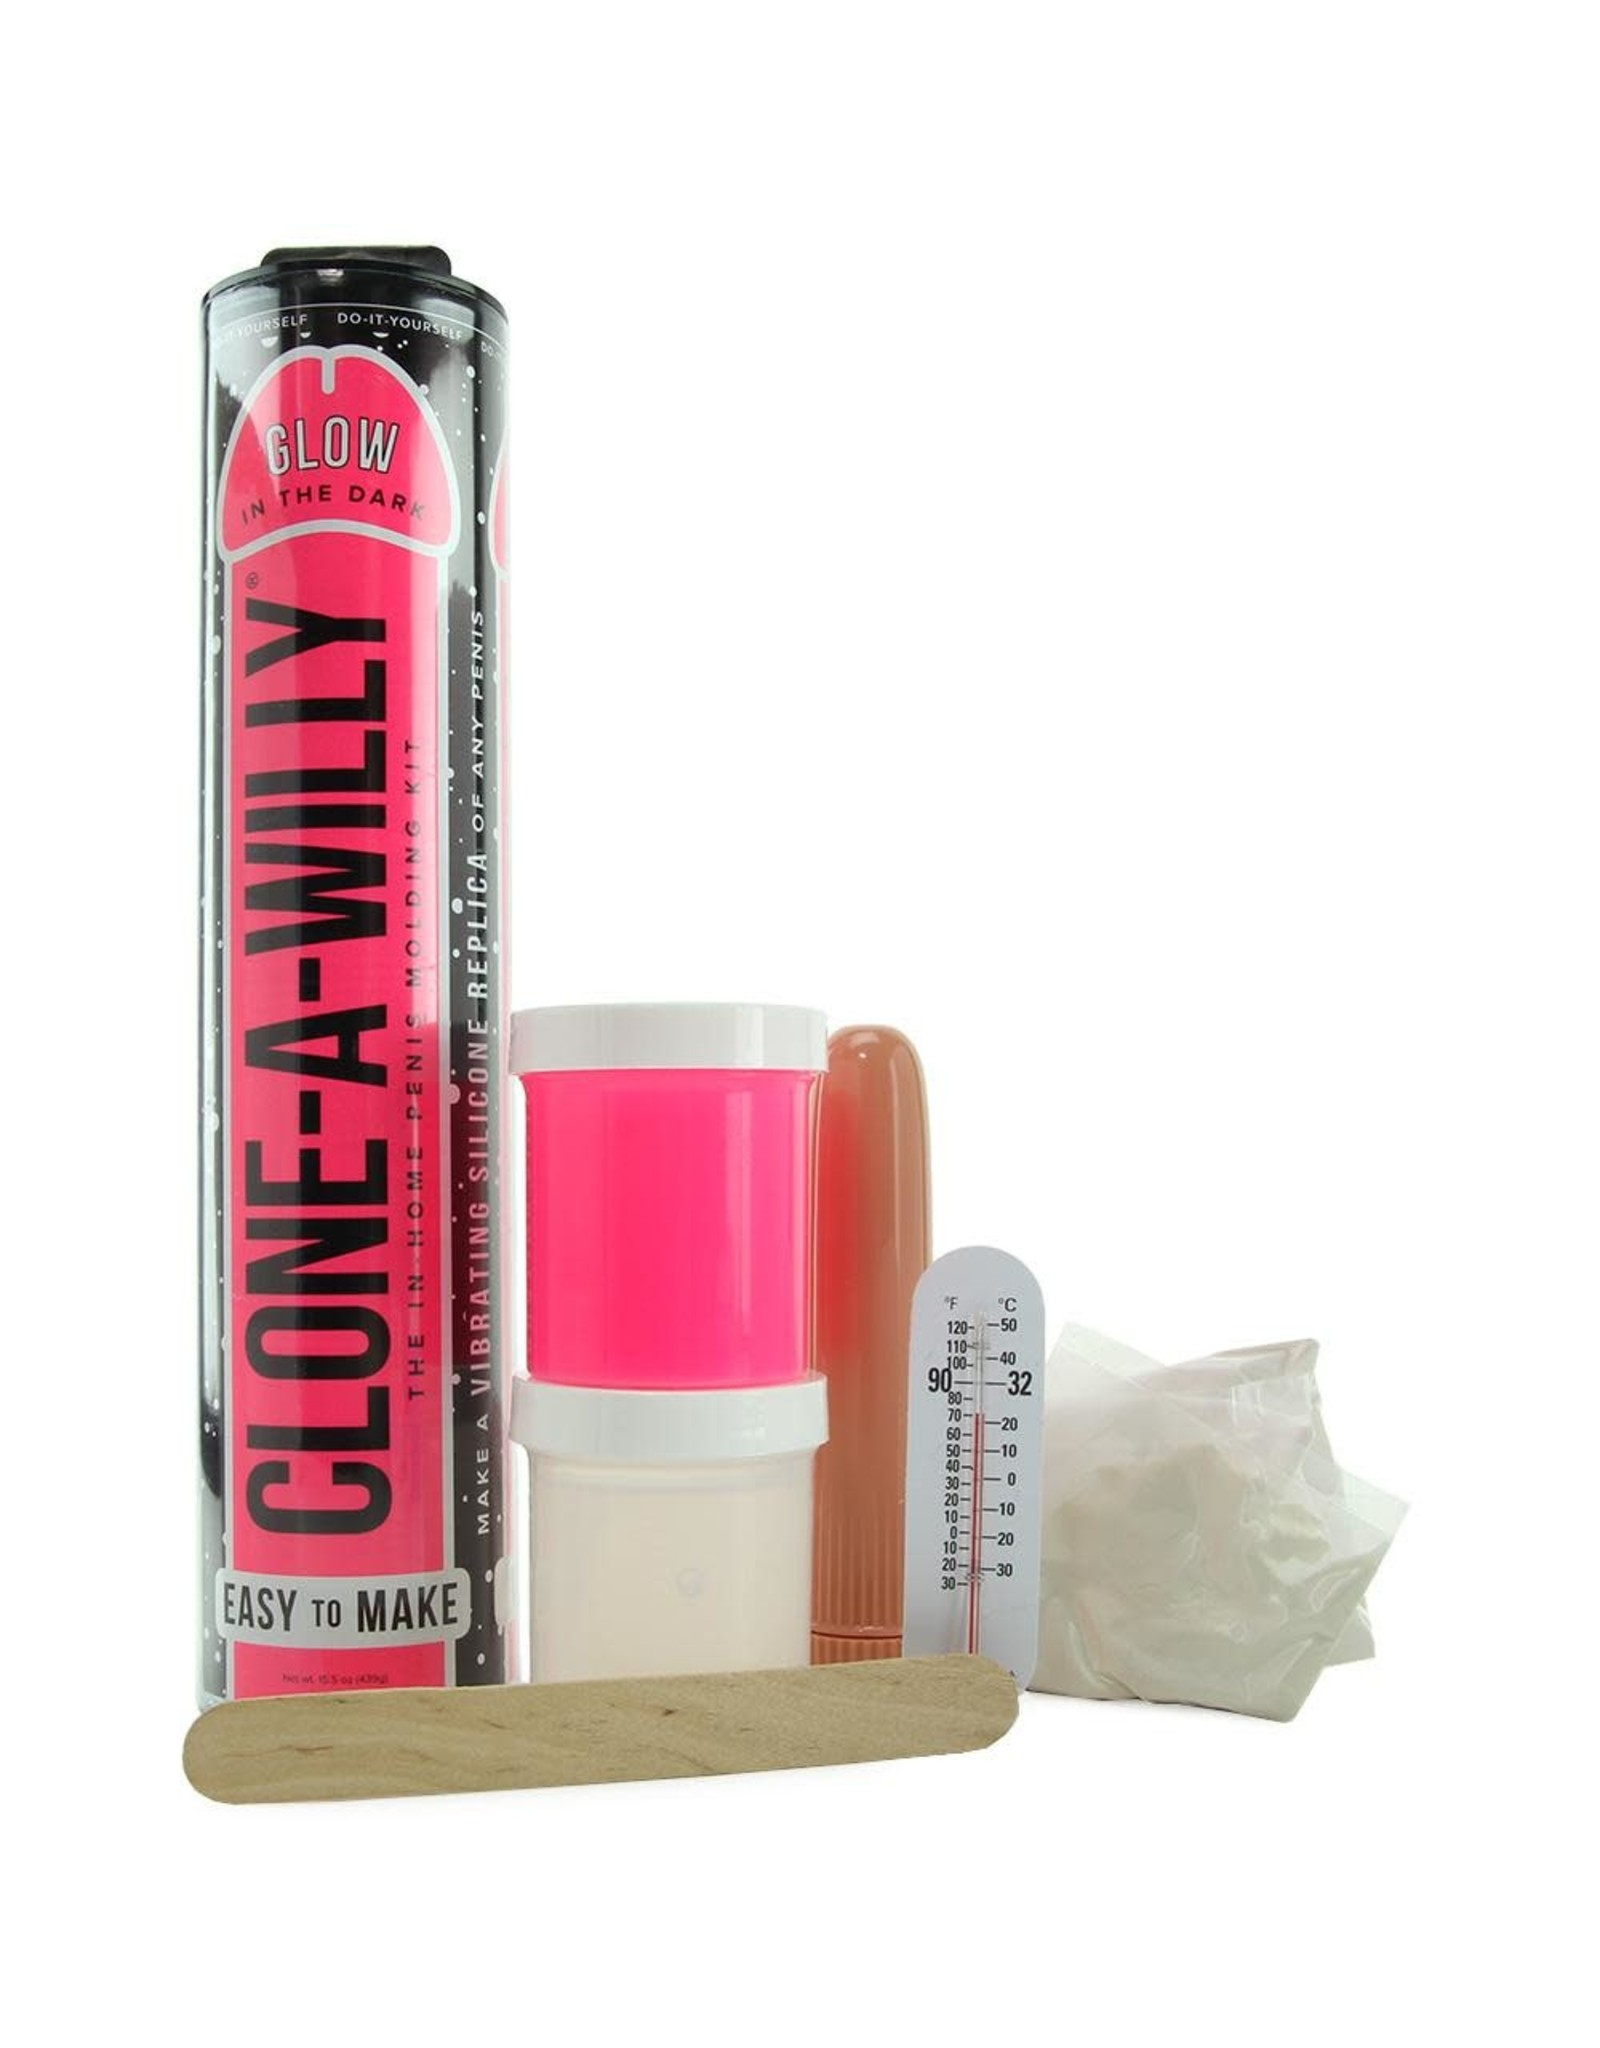 Empire Labs Clone-A-Willy - Glow in the Dark & Vibrating (Pink)